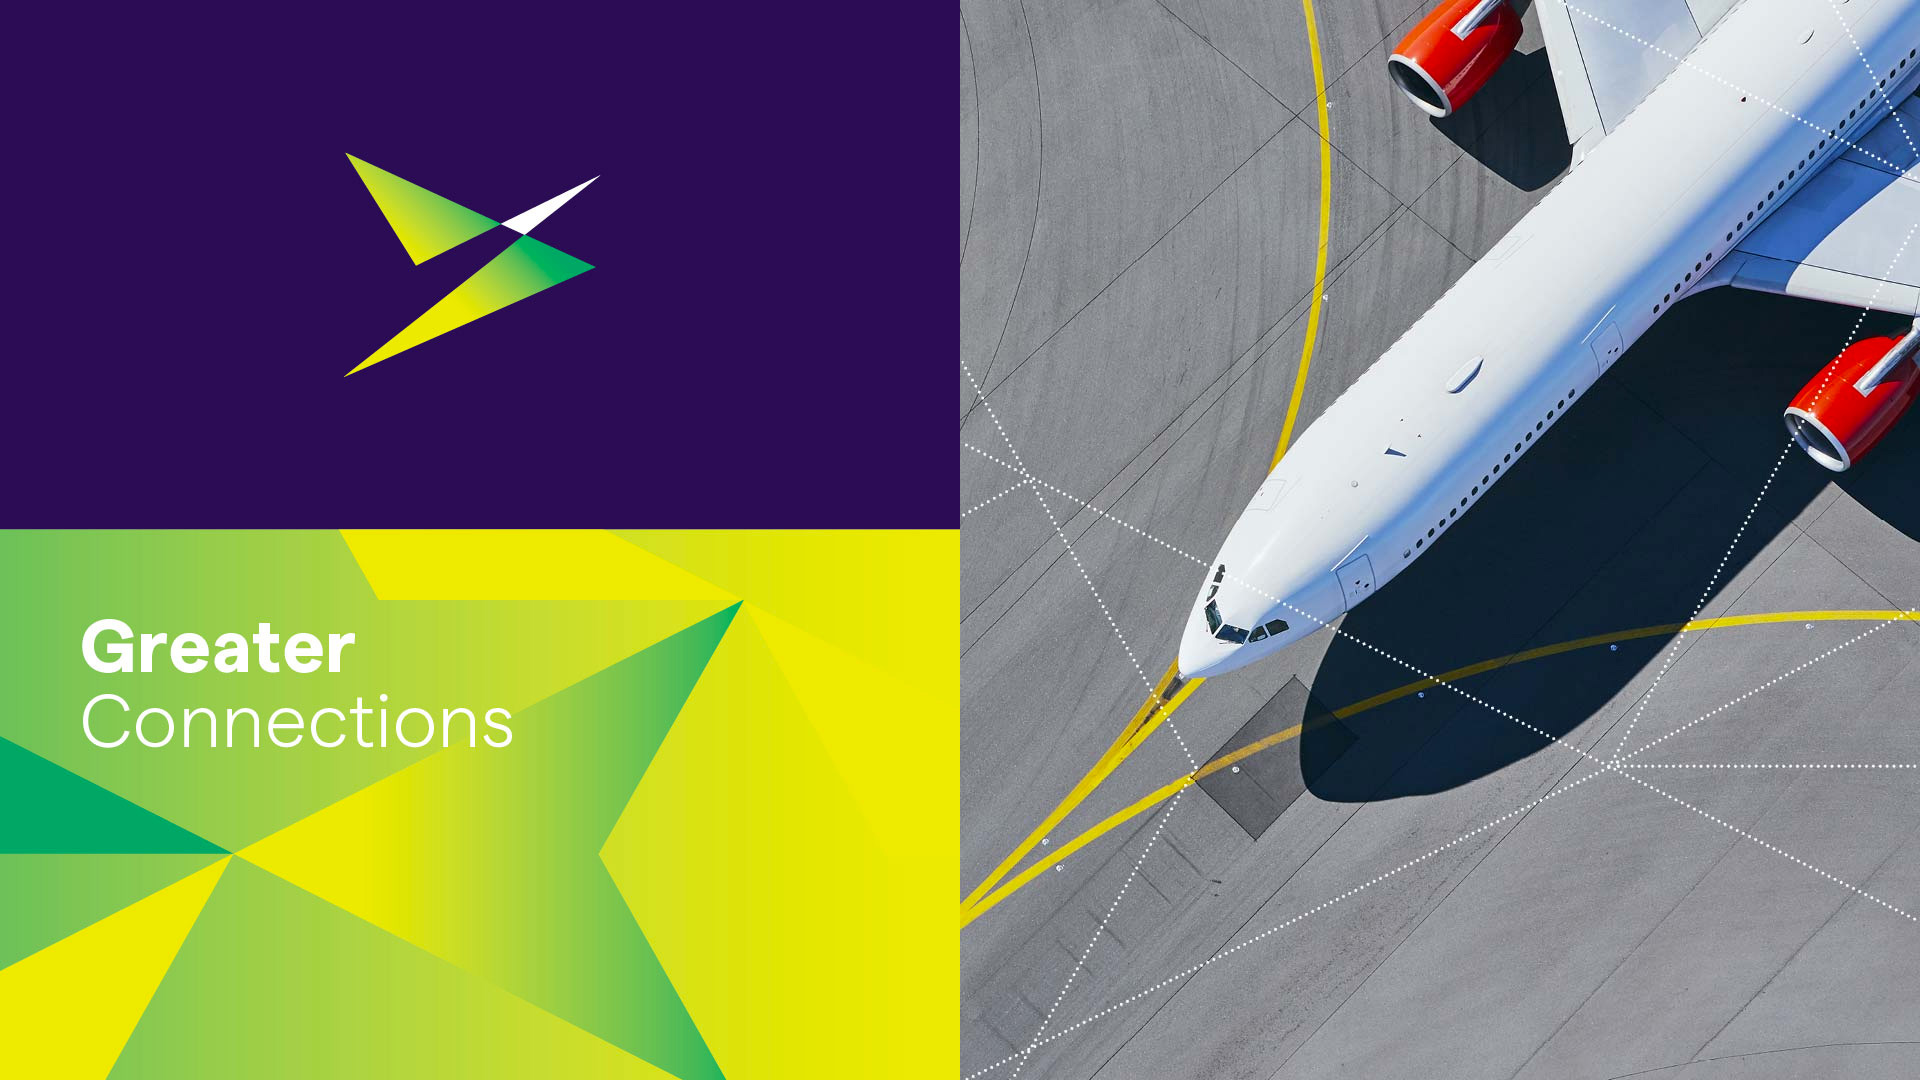 New Logo and Identity for Western Sydney Airport by Traffic